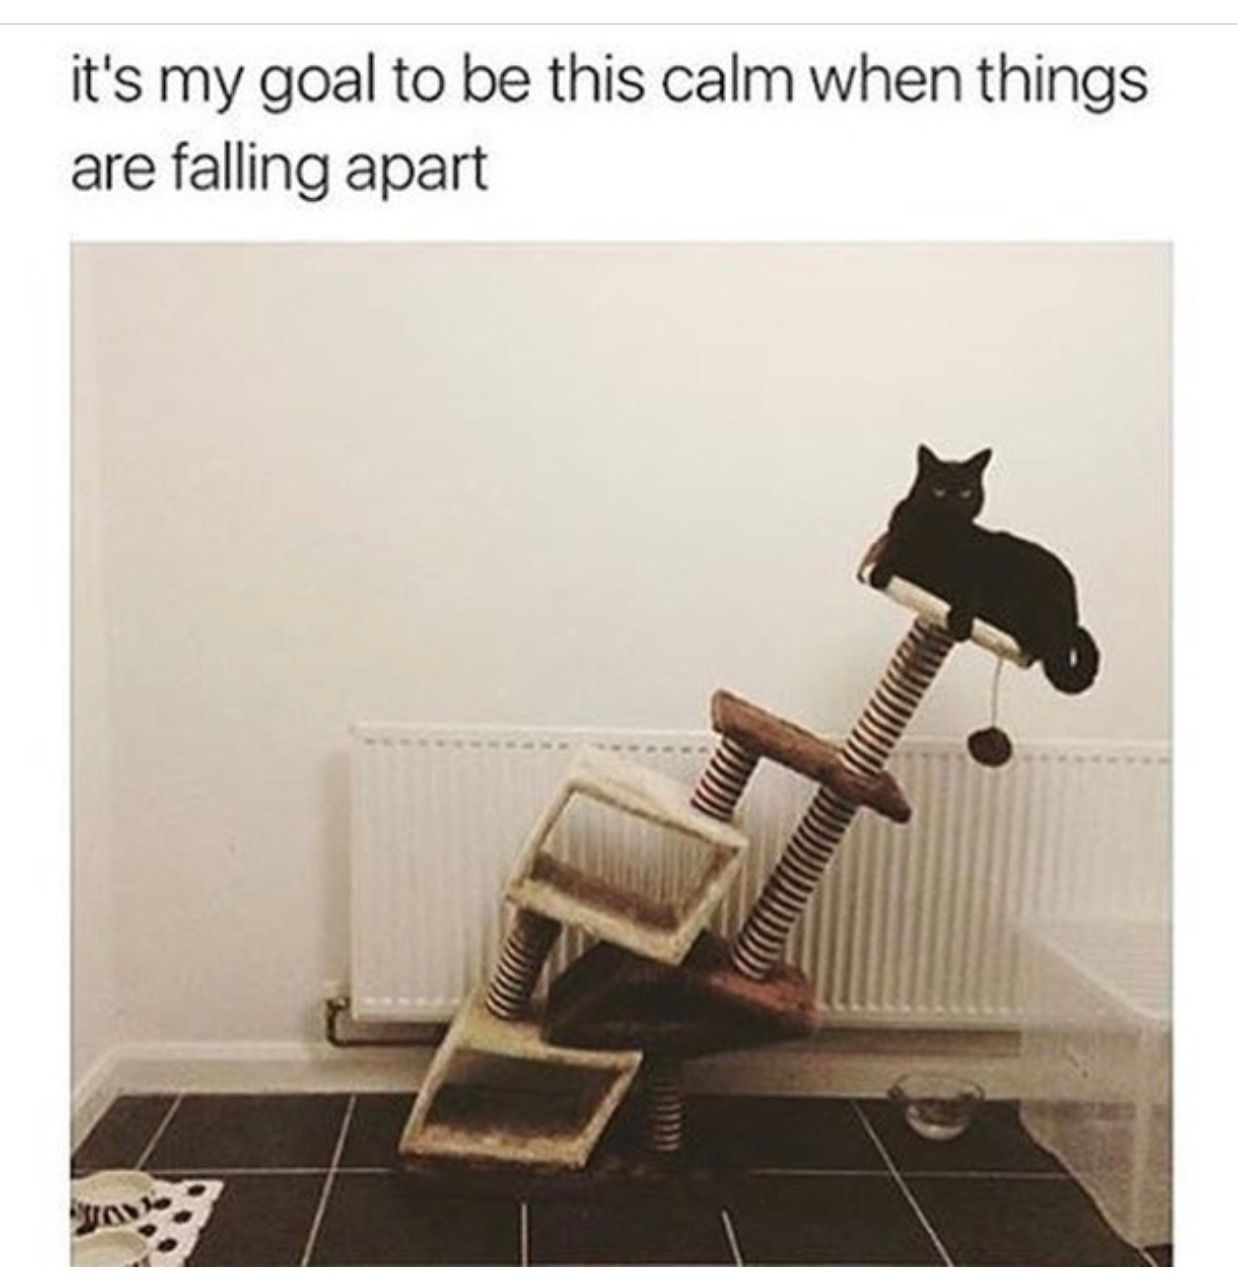 It's my goal to be this calm when things are falling apart